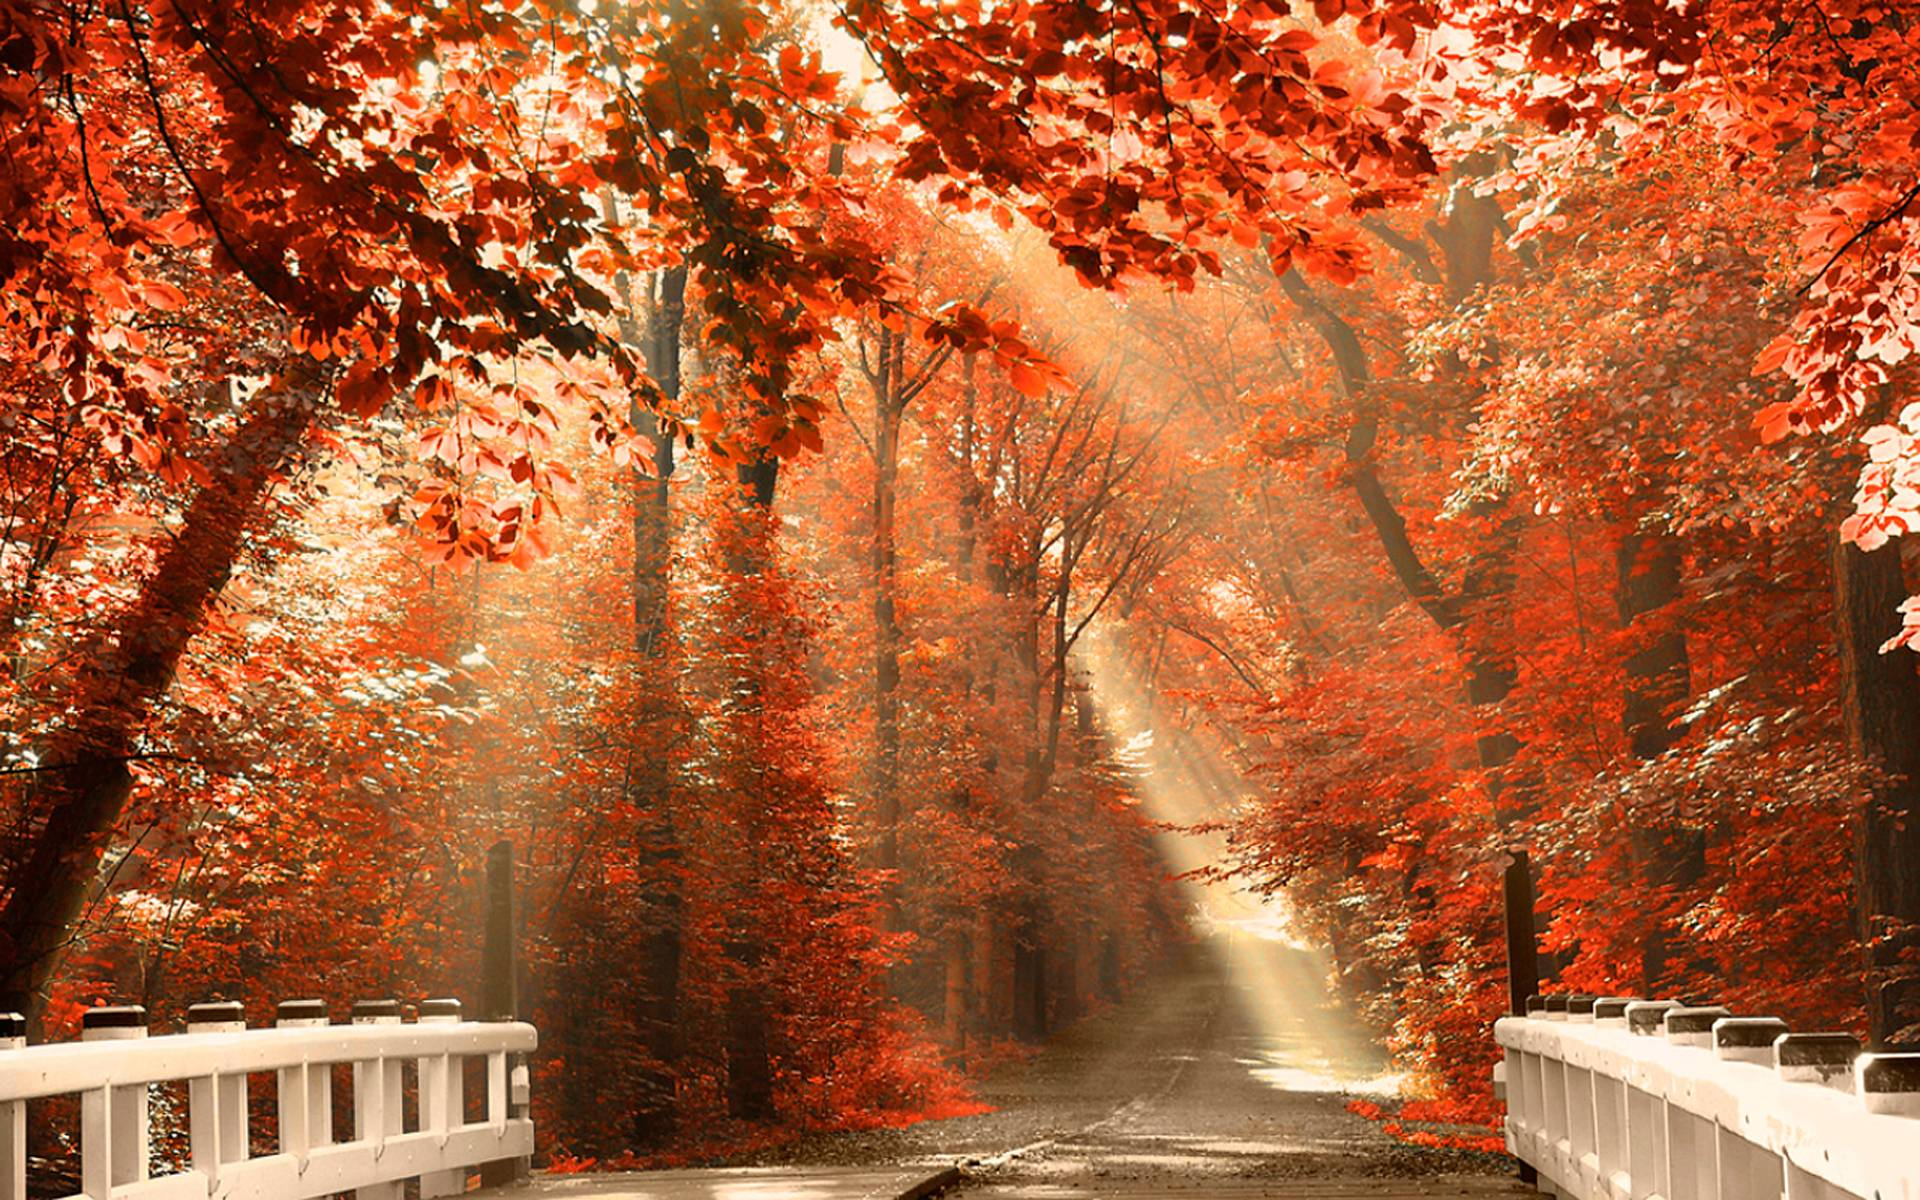 Fall Nature Desktop Wallpapers   Top Fall Nature Desktop 1920x1200